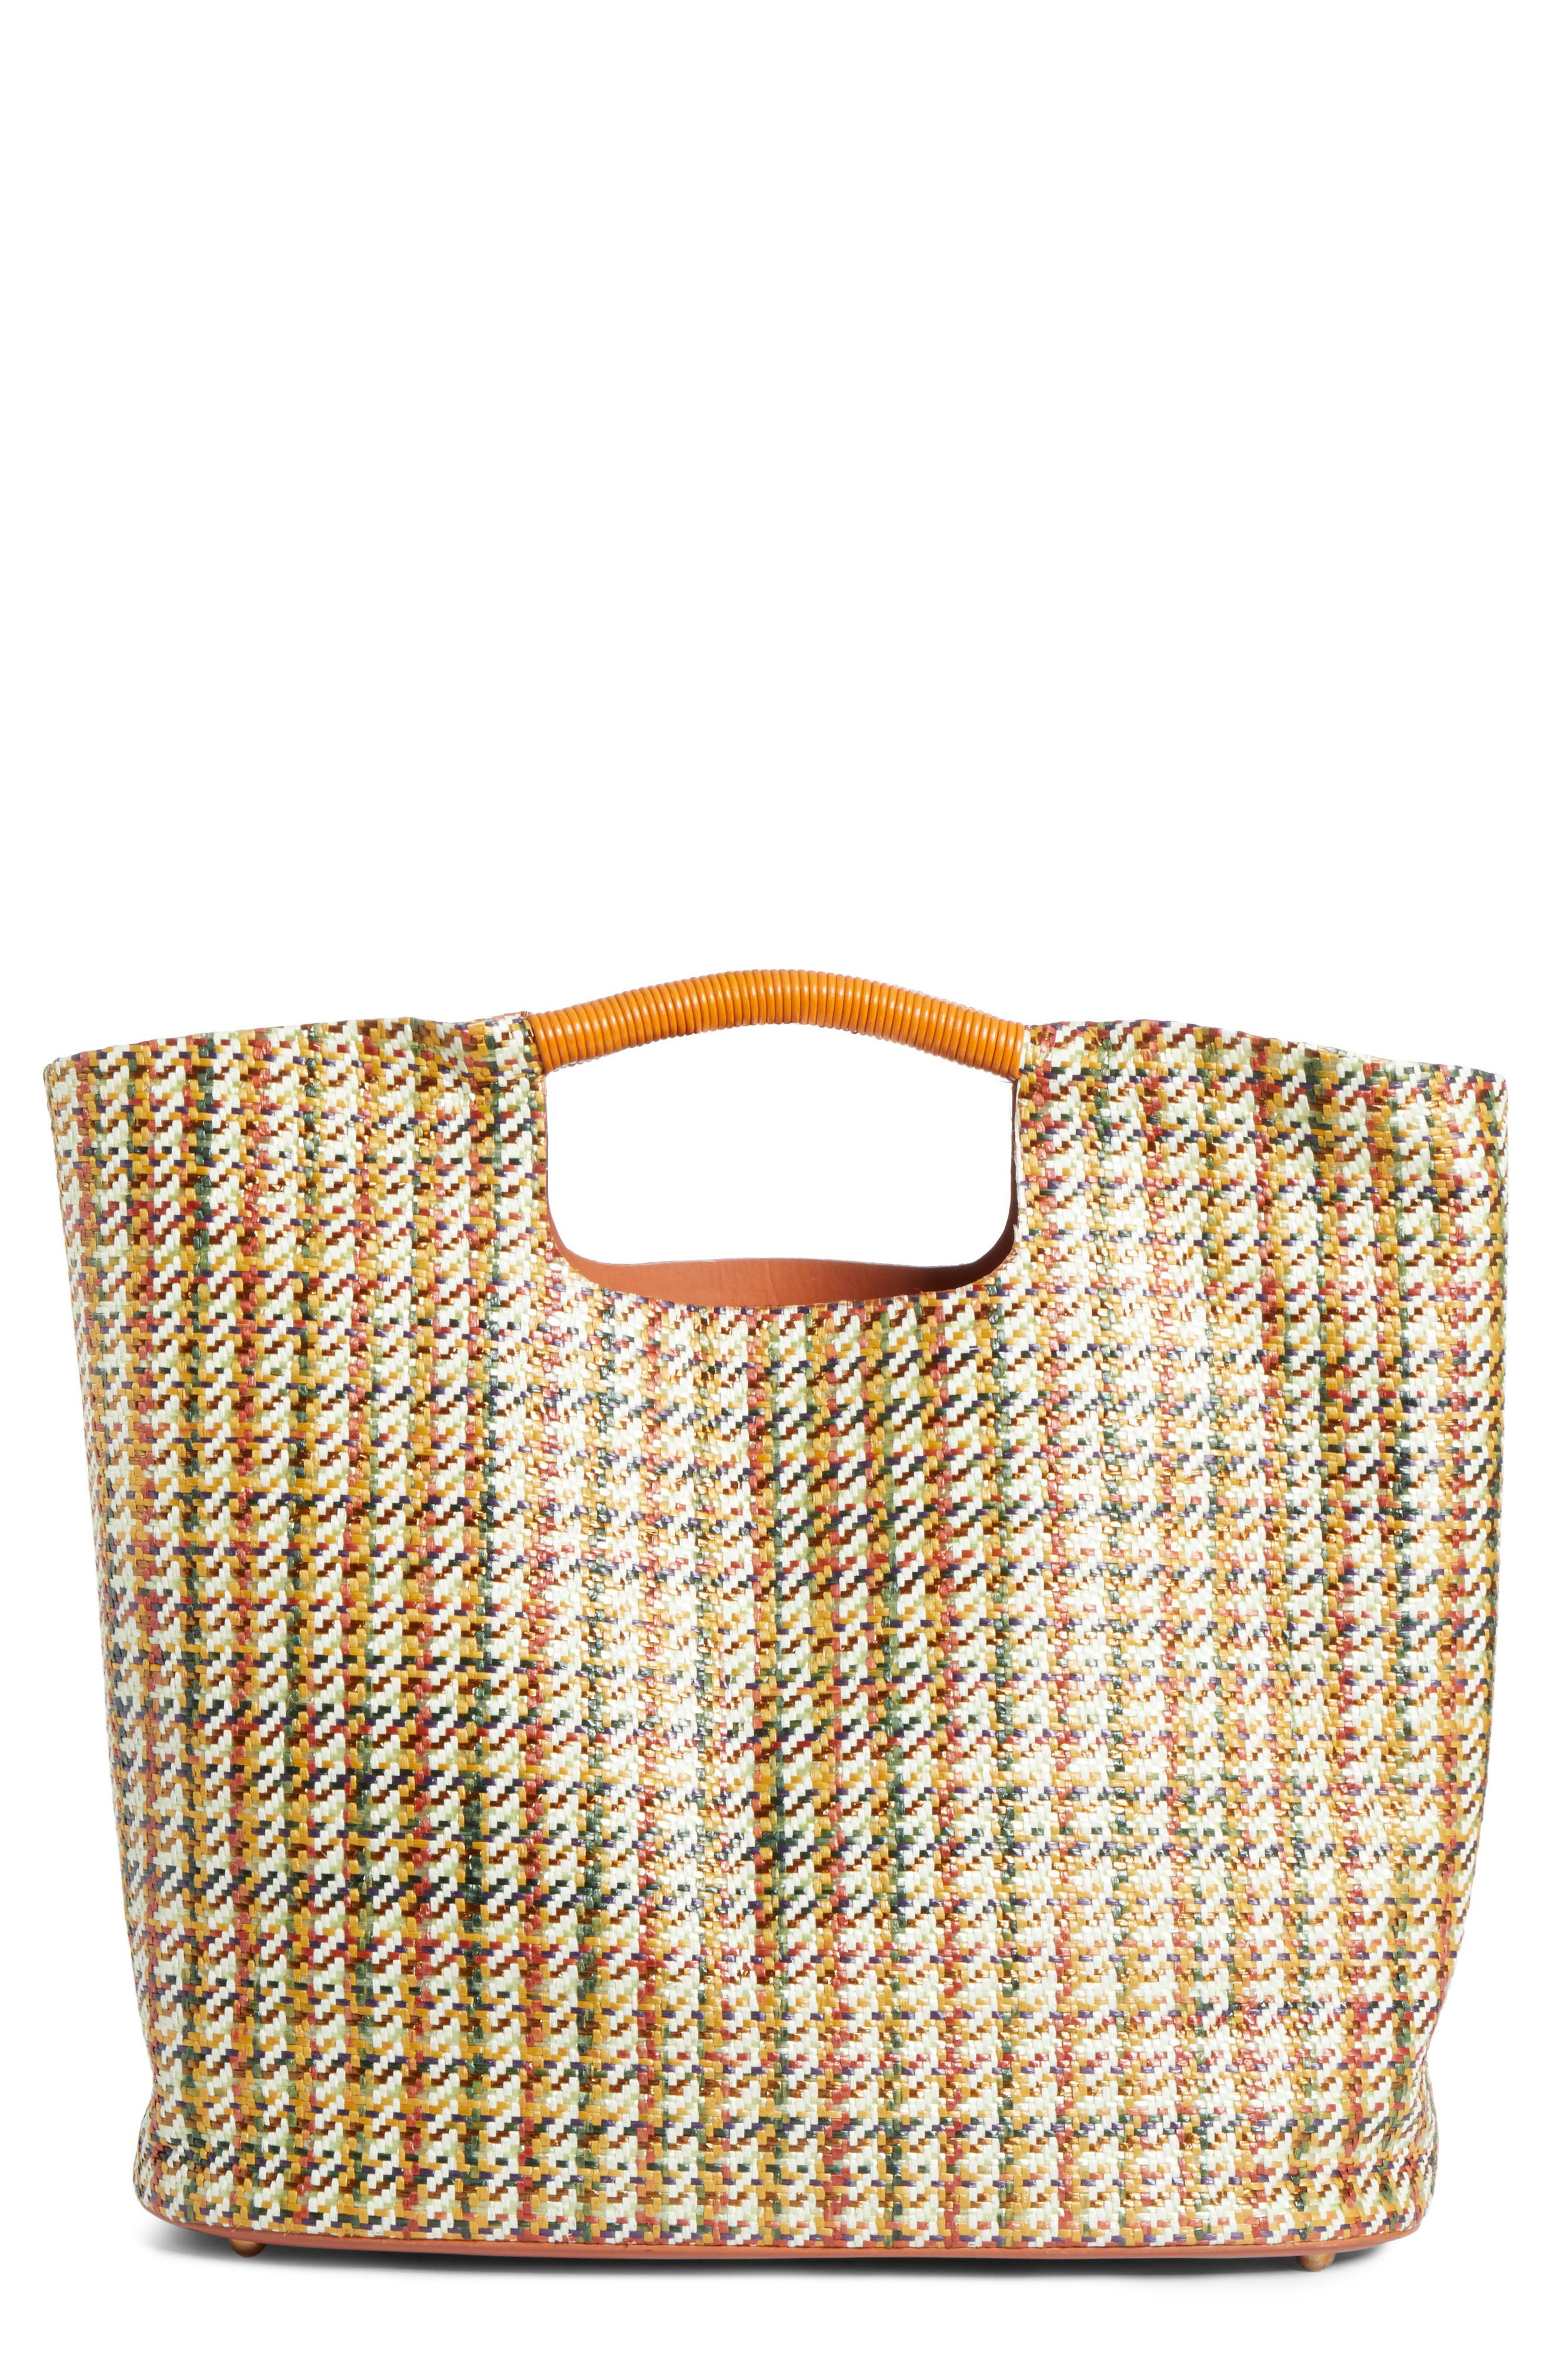 SIMON MILLER, Large Birch Houndstooth Tote, Main thumbnail 1, color, 200